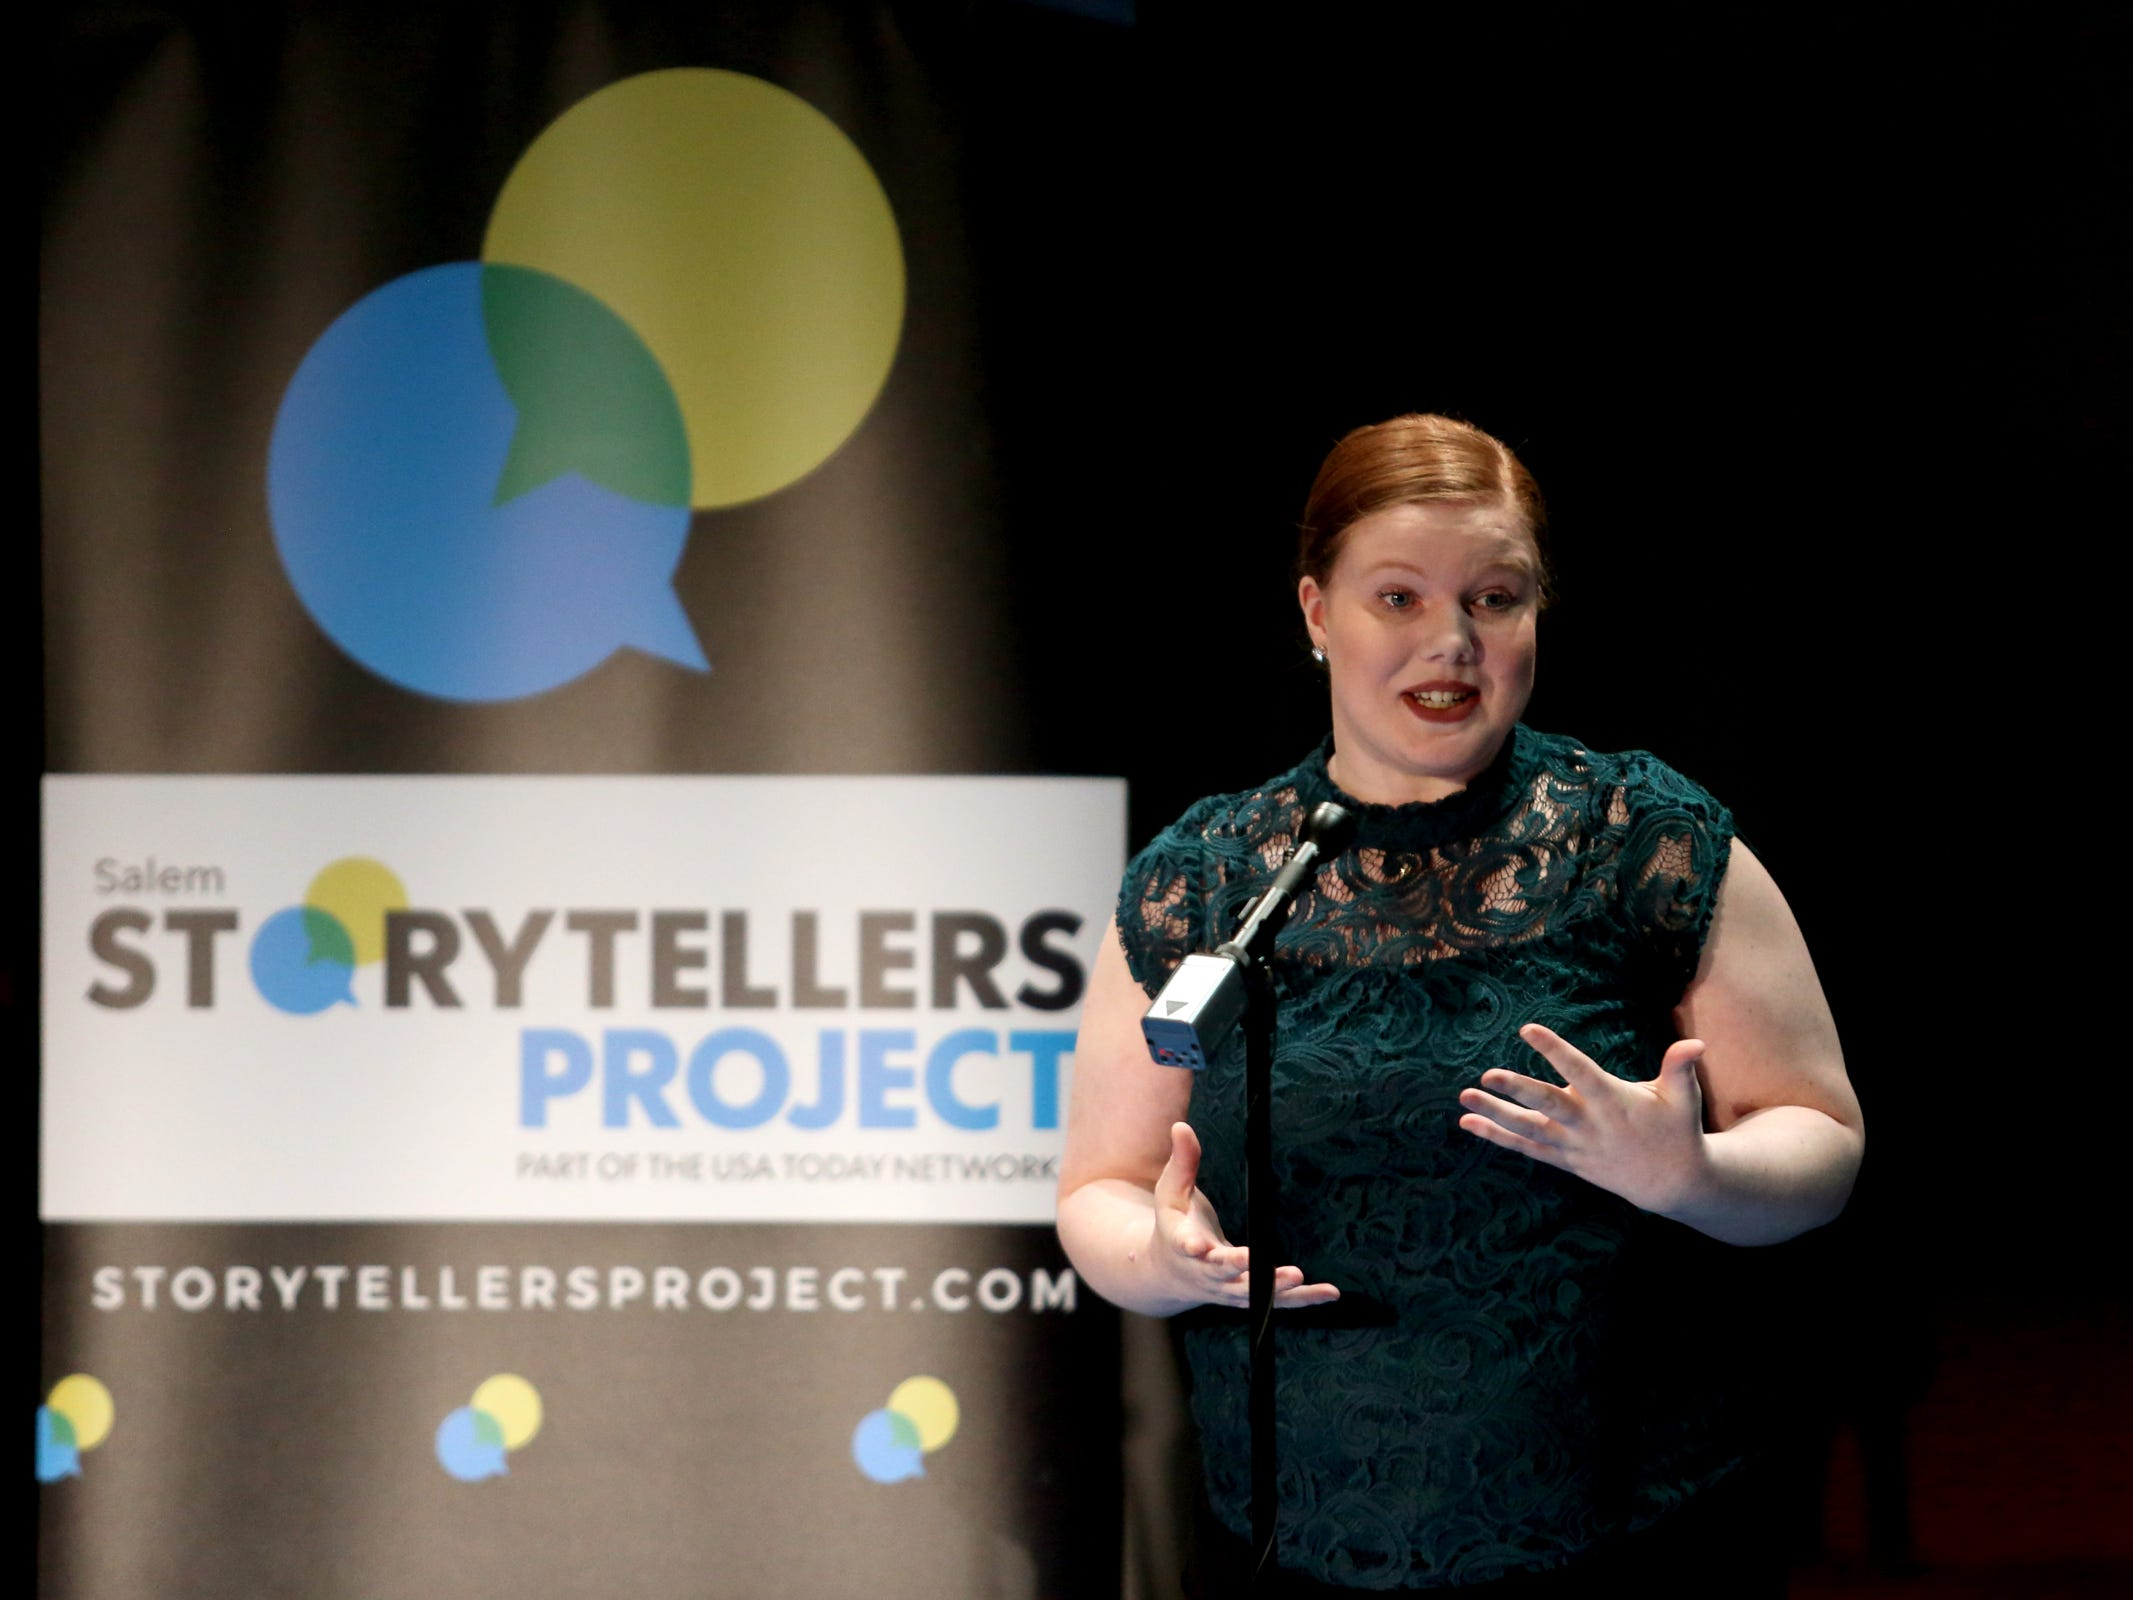 Shayla Lacy speaks as Salem Storytellers Project presents Romance, or Not at the Pentacle Theatre in Salem on Tuesday, Feb. 5, 2019.